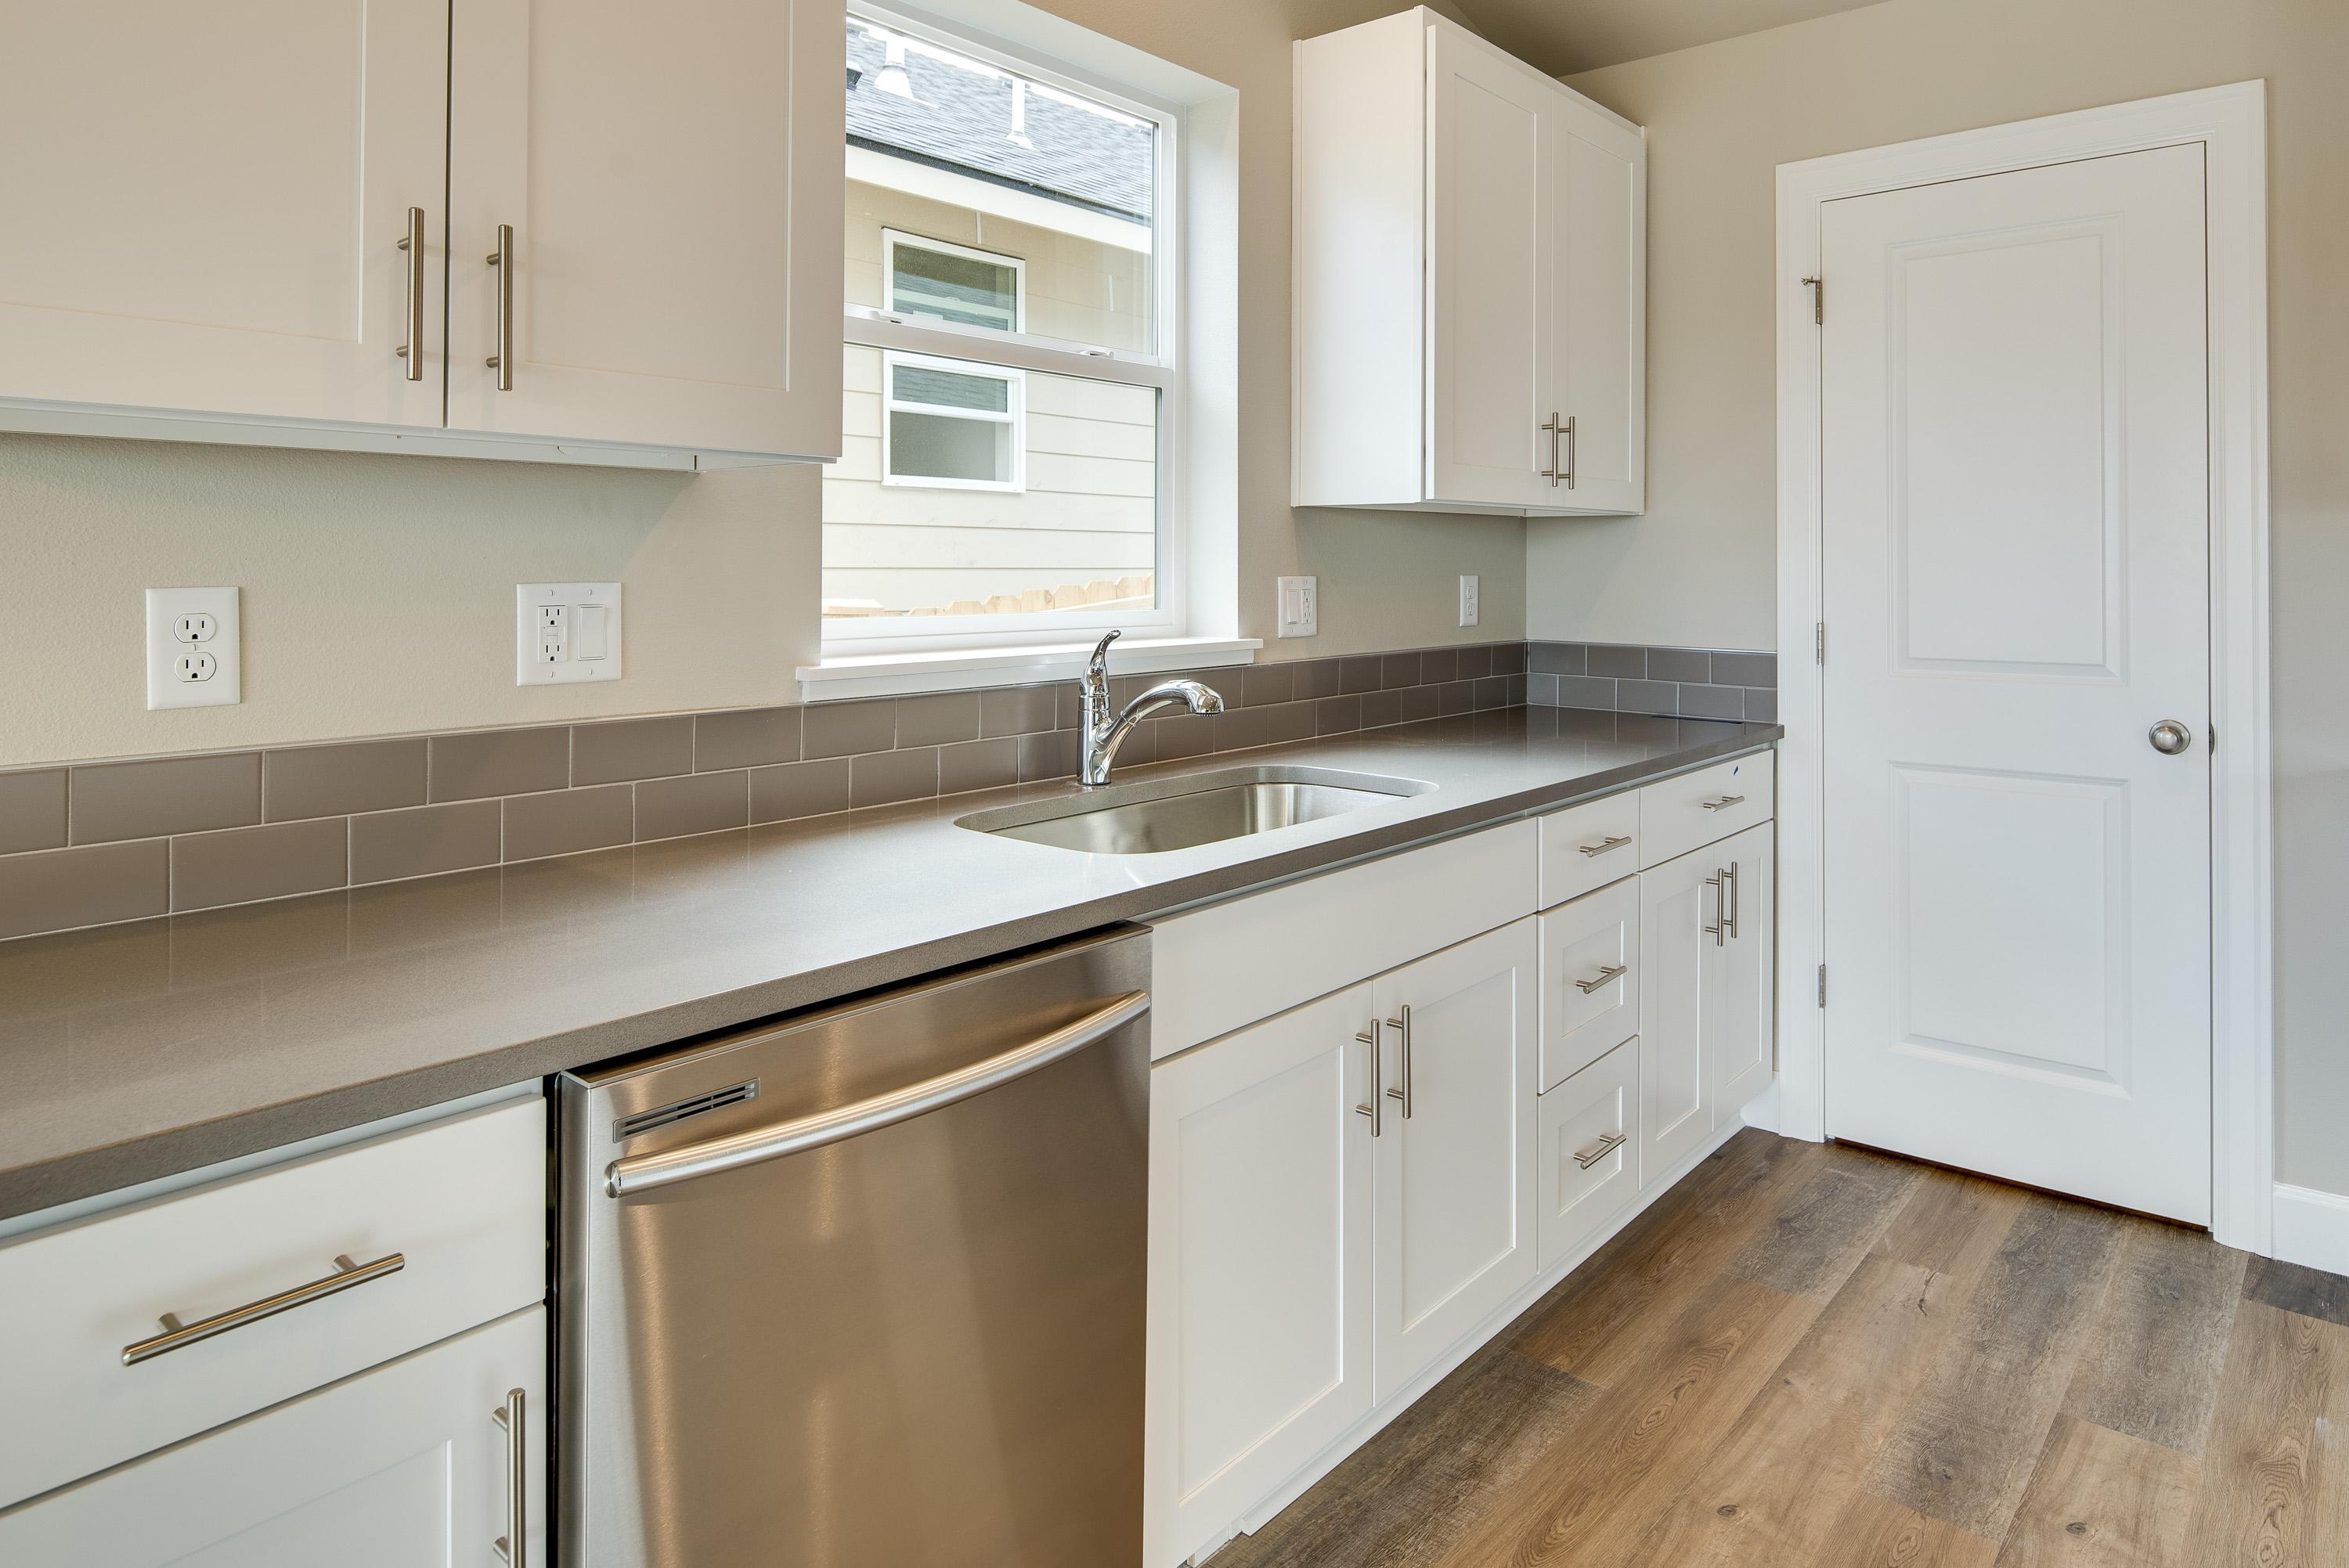 Kitchen featured in the Timber A By Woodhill Homes in Central Oregon, OR